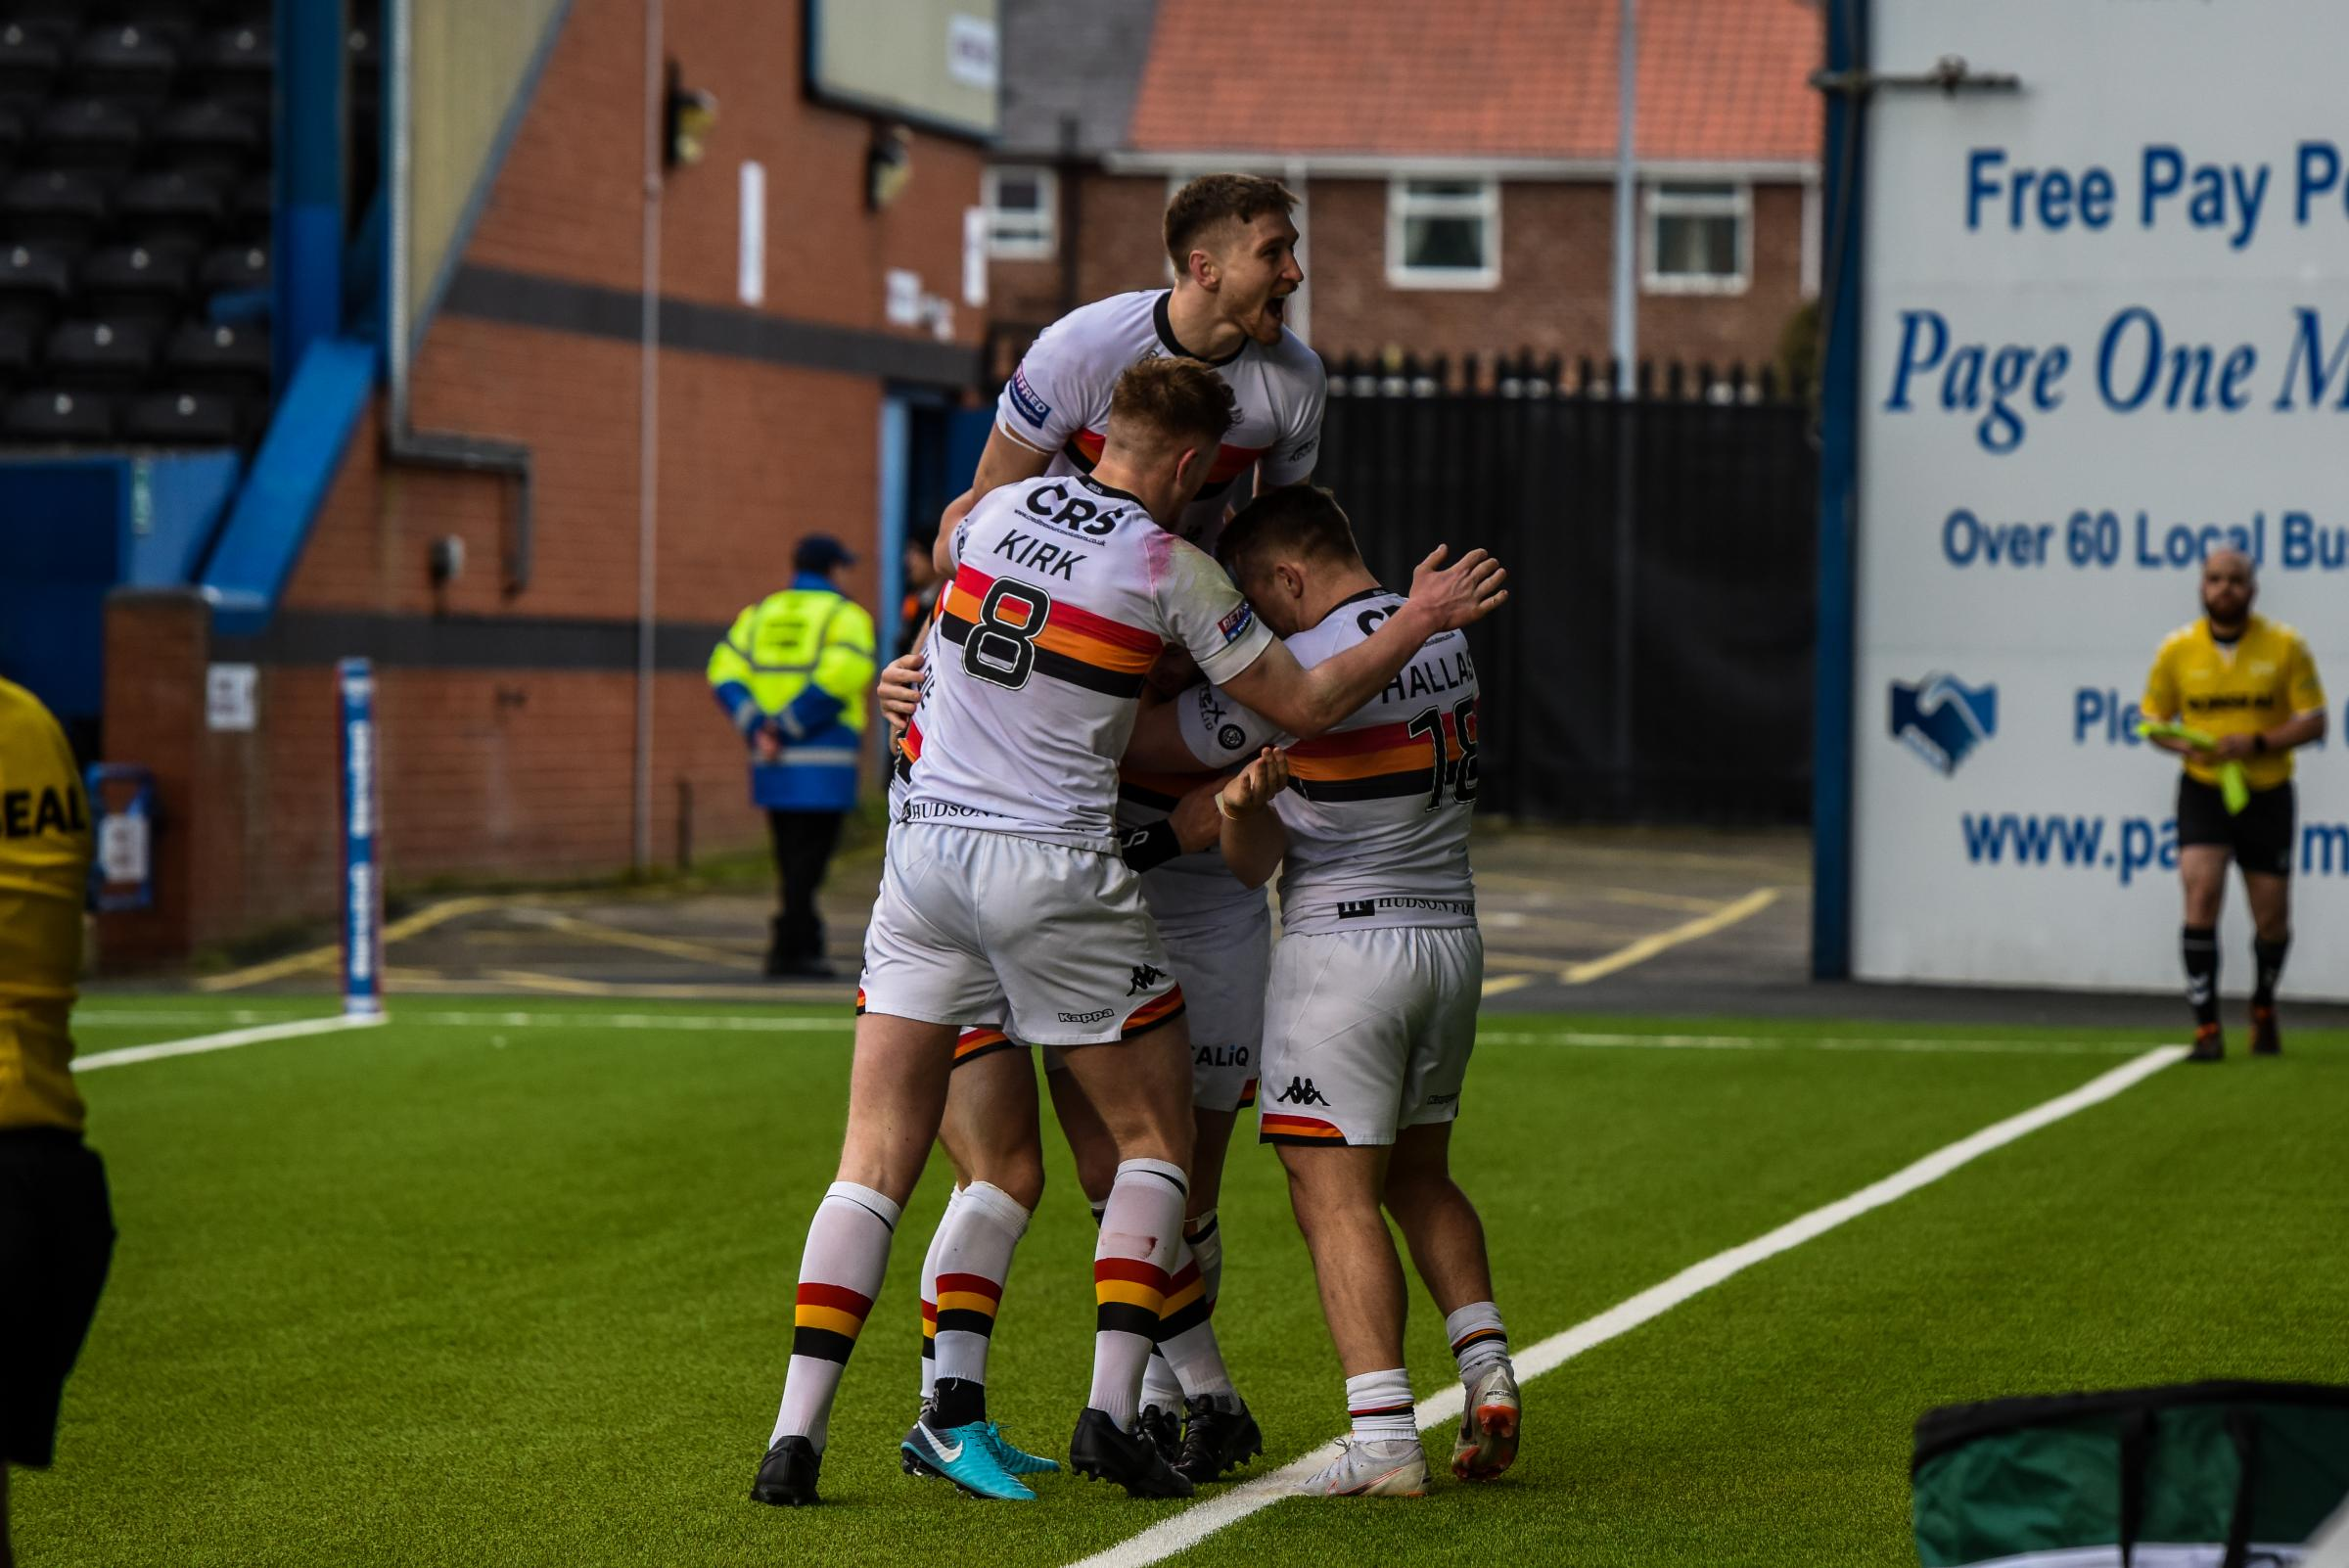 Bulls celebrate a try against Widnes  Picture: Tom Pearson